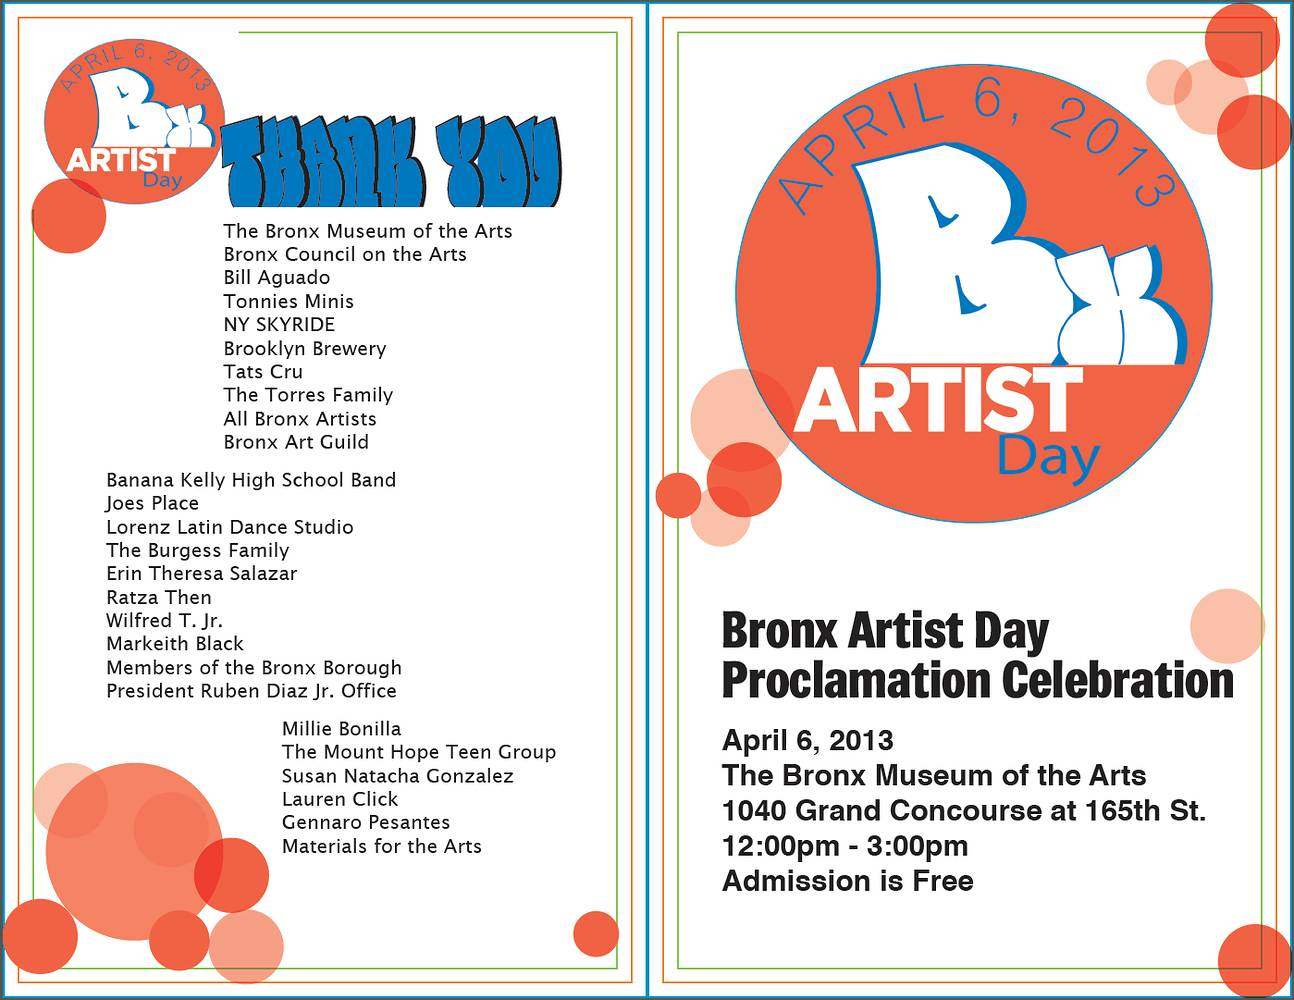 Bronx Artist Day Program Outside by Linda Bonilla